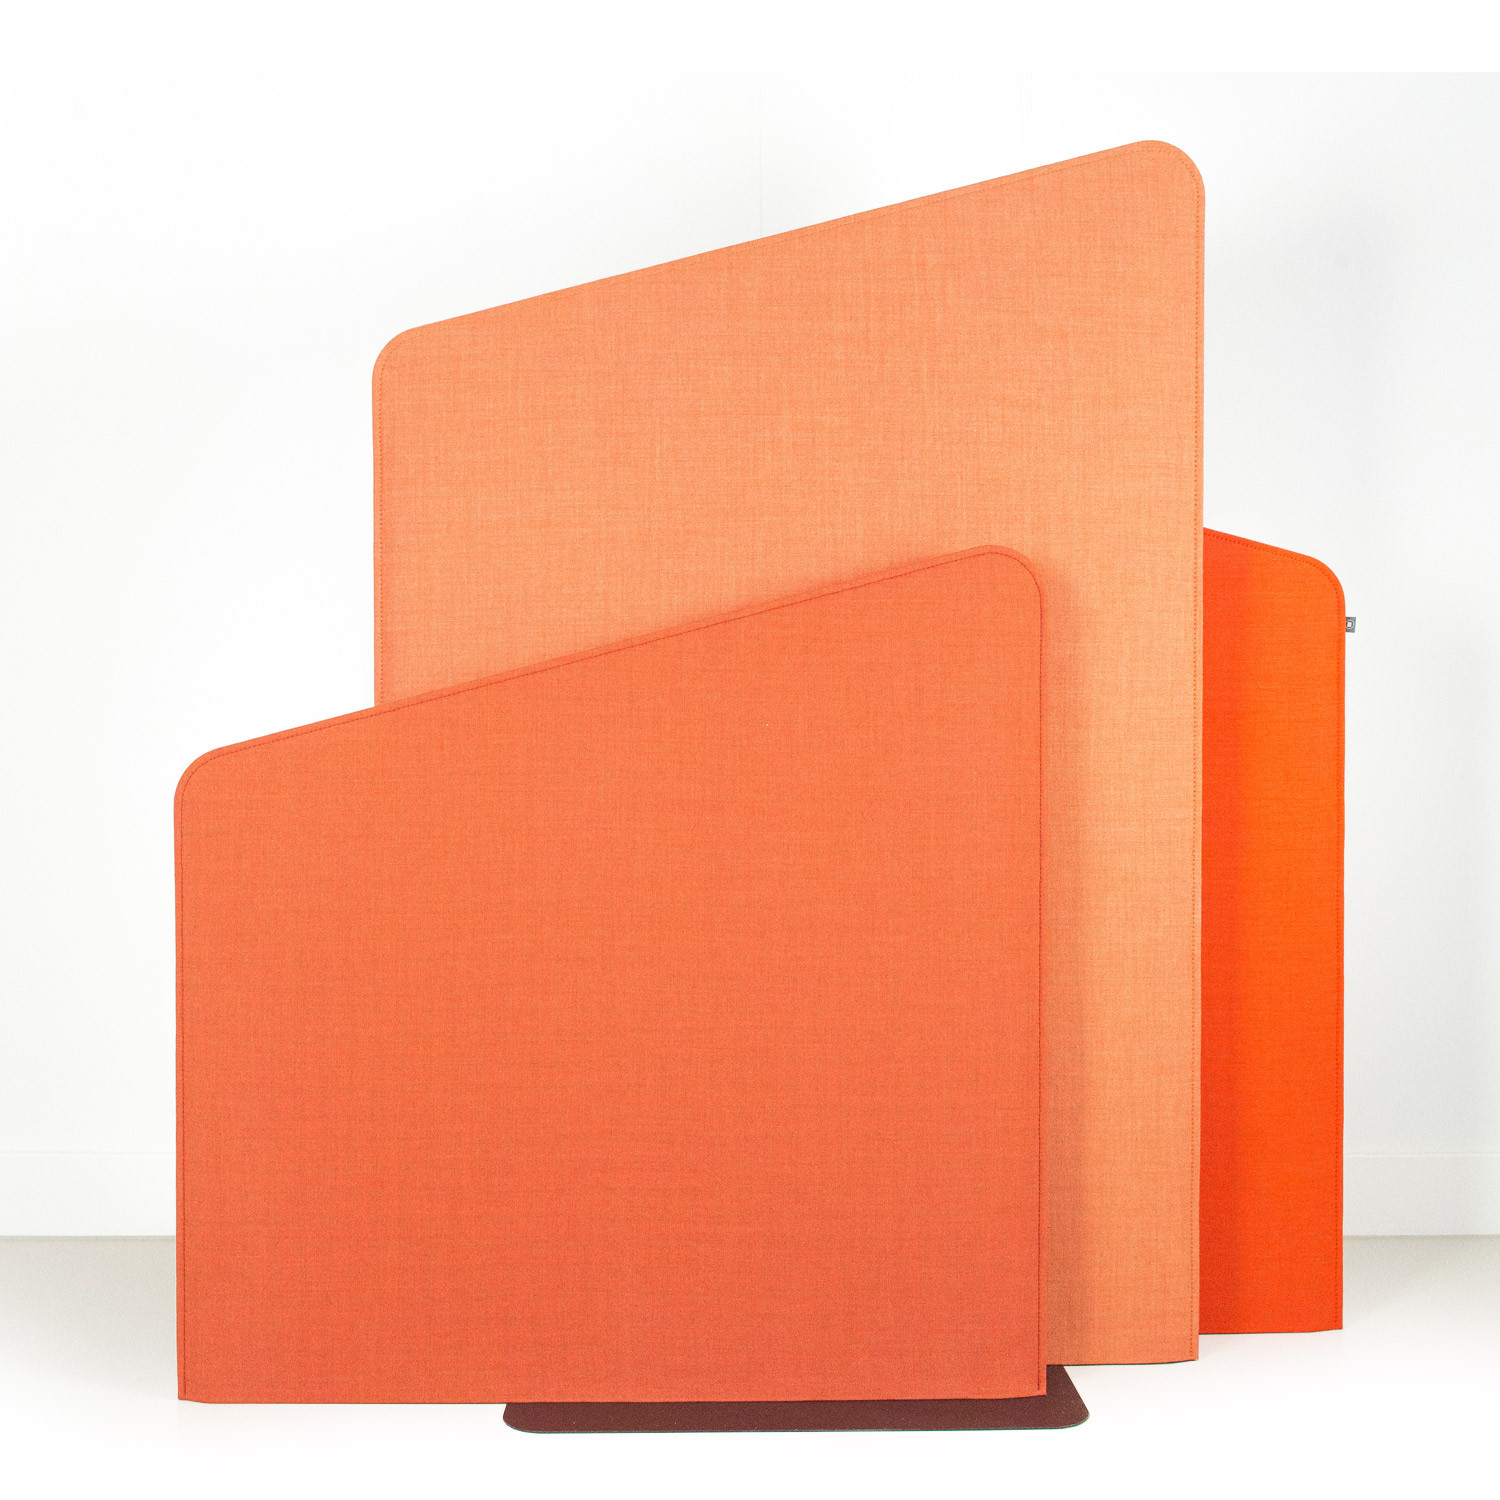 BuzziFrio Acoustic Screens